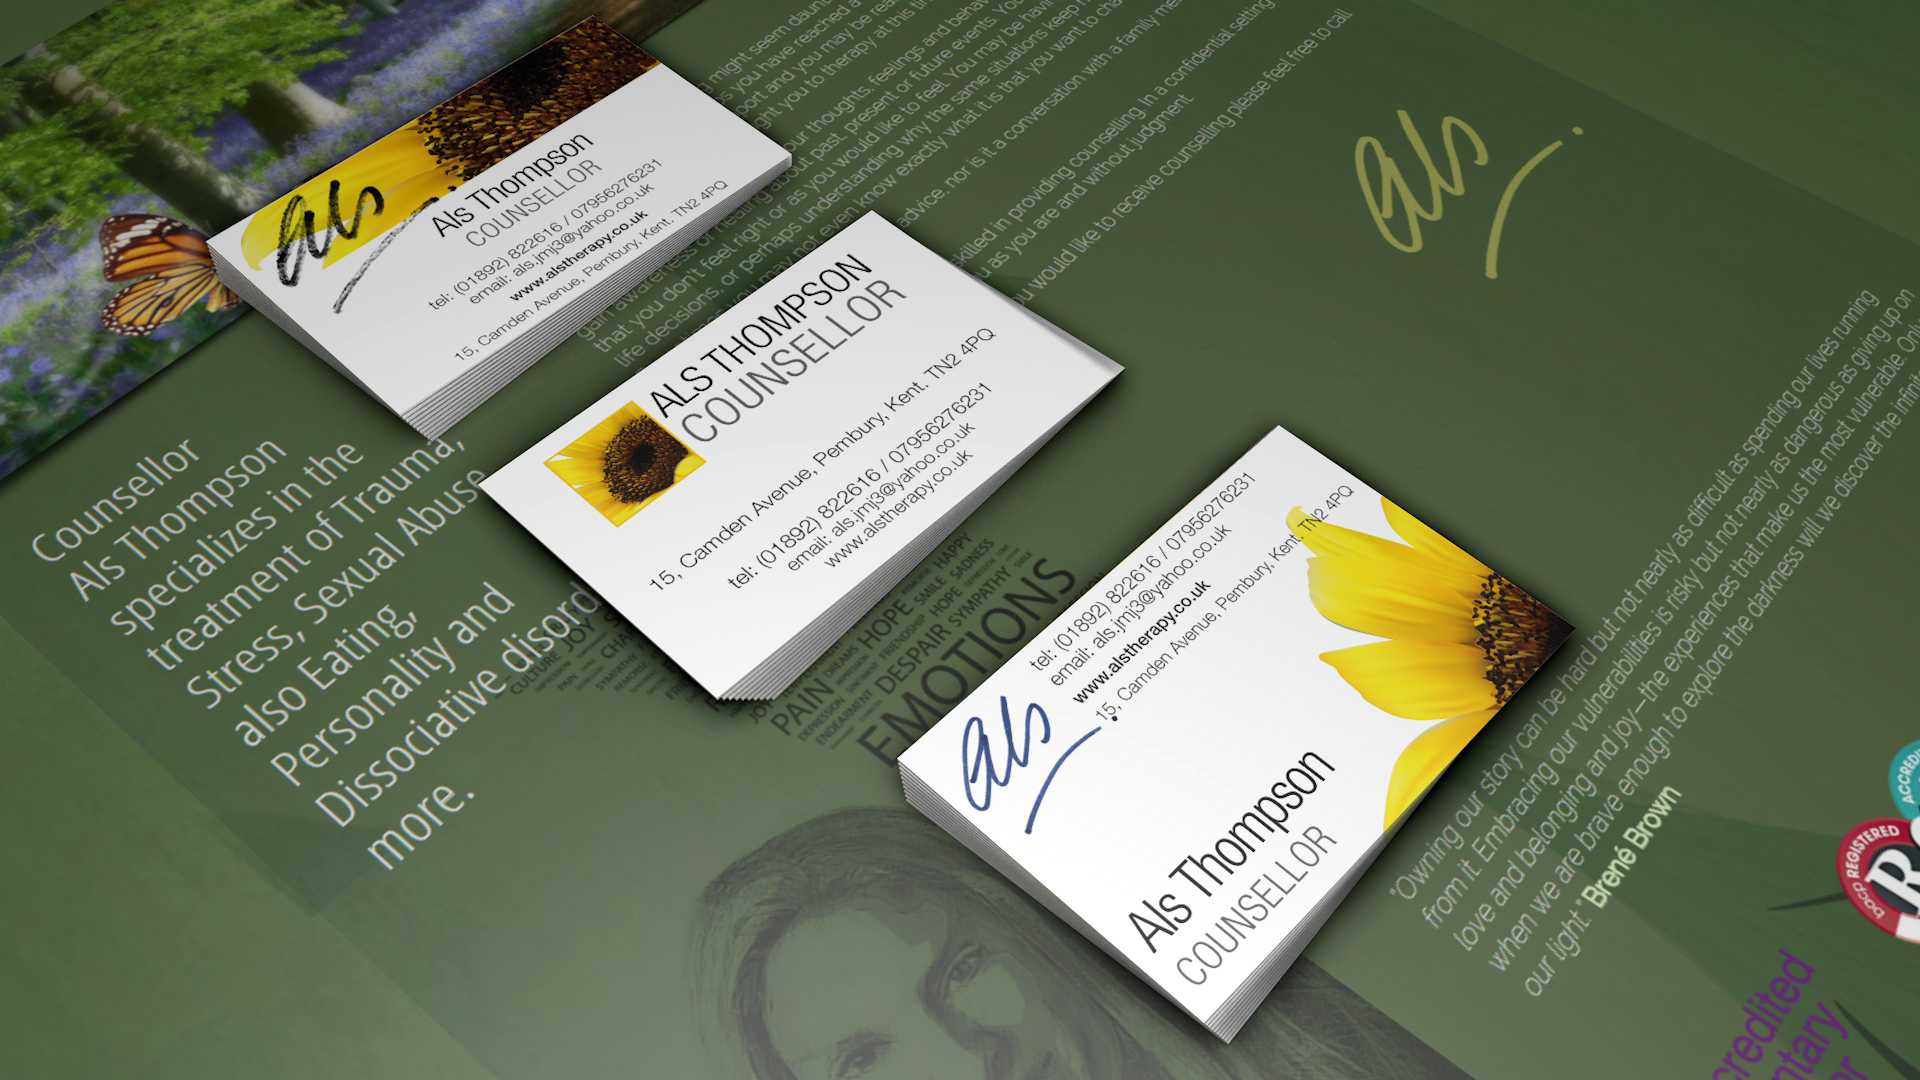 Als Thompson stationery design